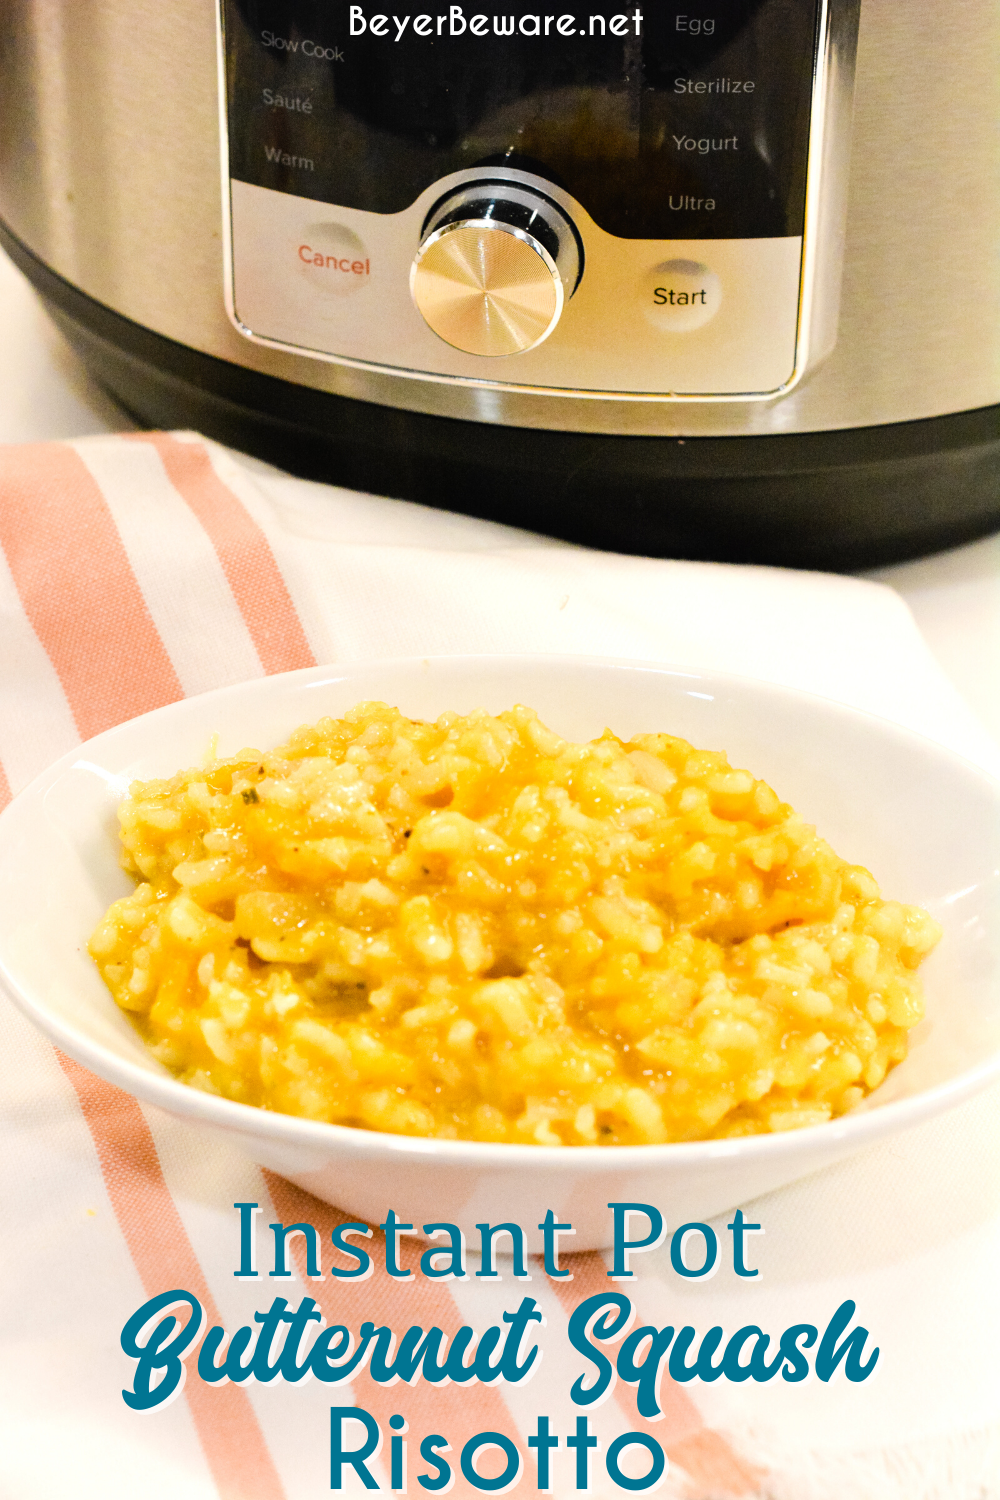 Instant Pot butternut squash risotto is a creamy risotto recipe has a hint of sweetness but savory in flavor from the onion, garlic, and sage and is made in under 20 minutes.